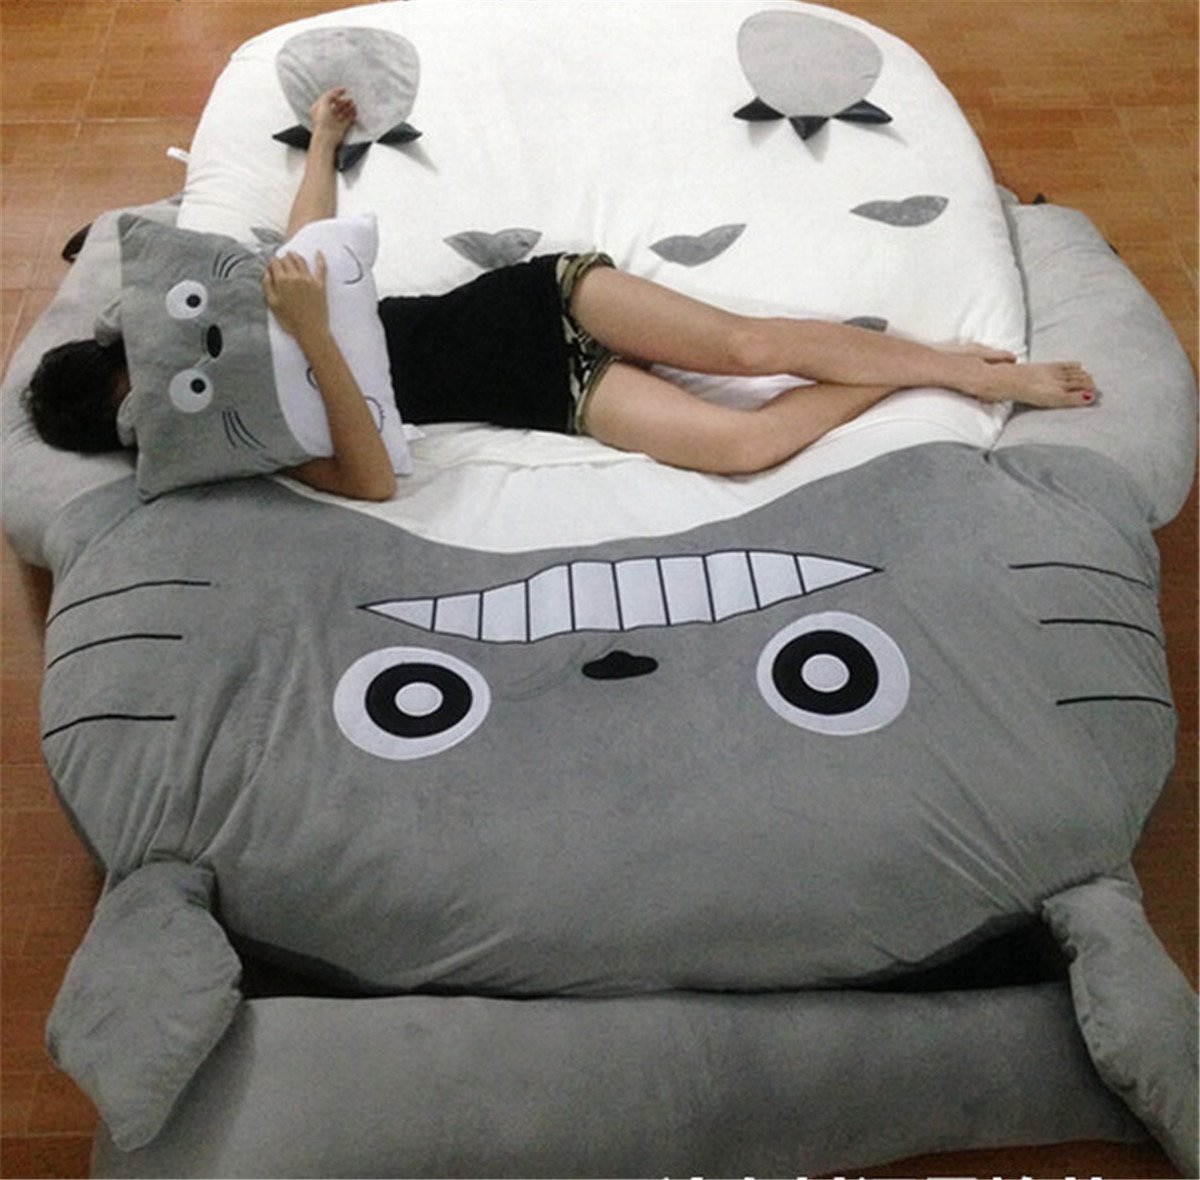 HOT SALE Children's and Adult Totoro Design Big Sofa Totoro Bed Mattress Sleeping Bag Mattress by VU ROUL (Image #1)